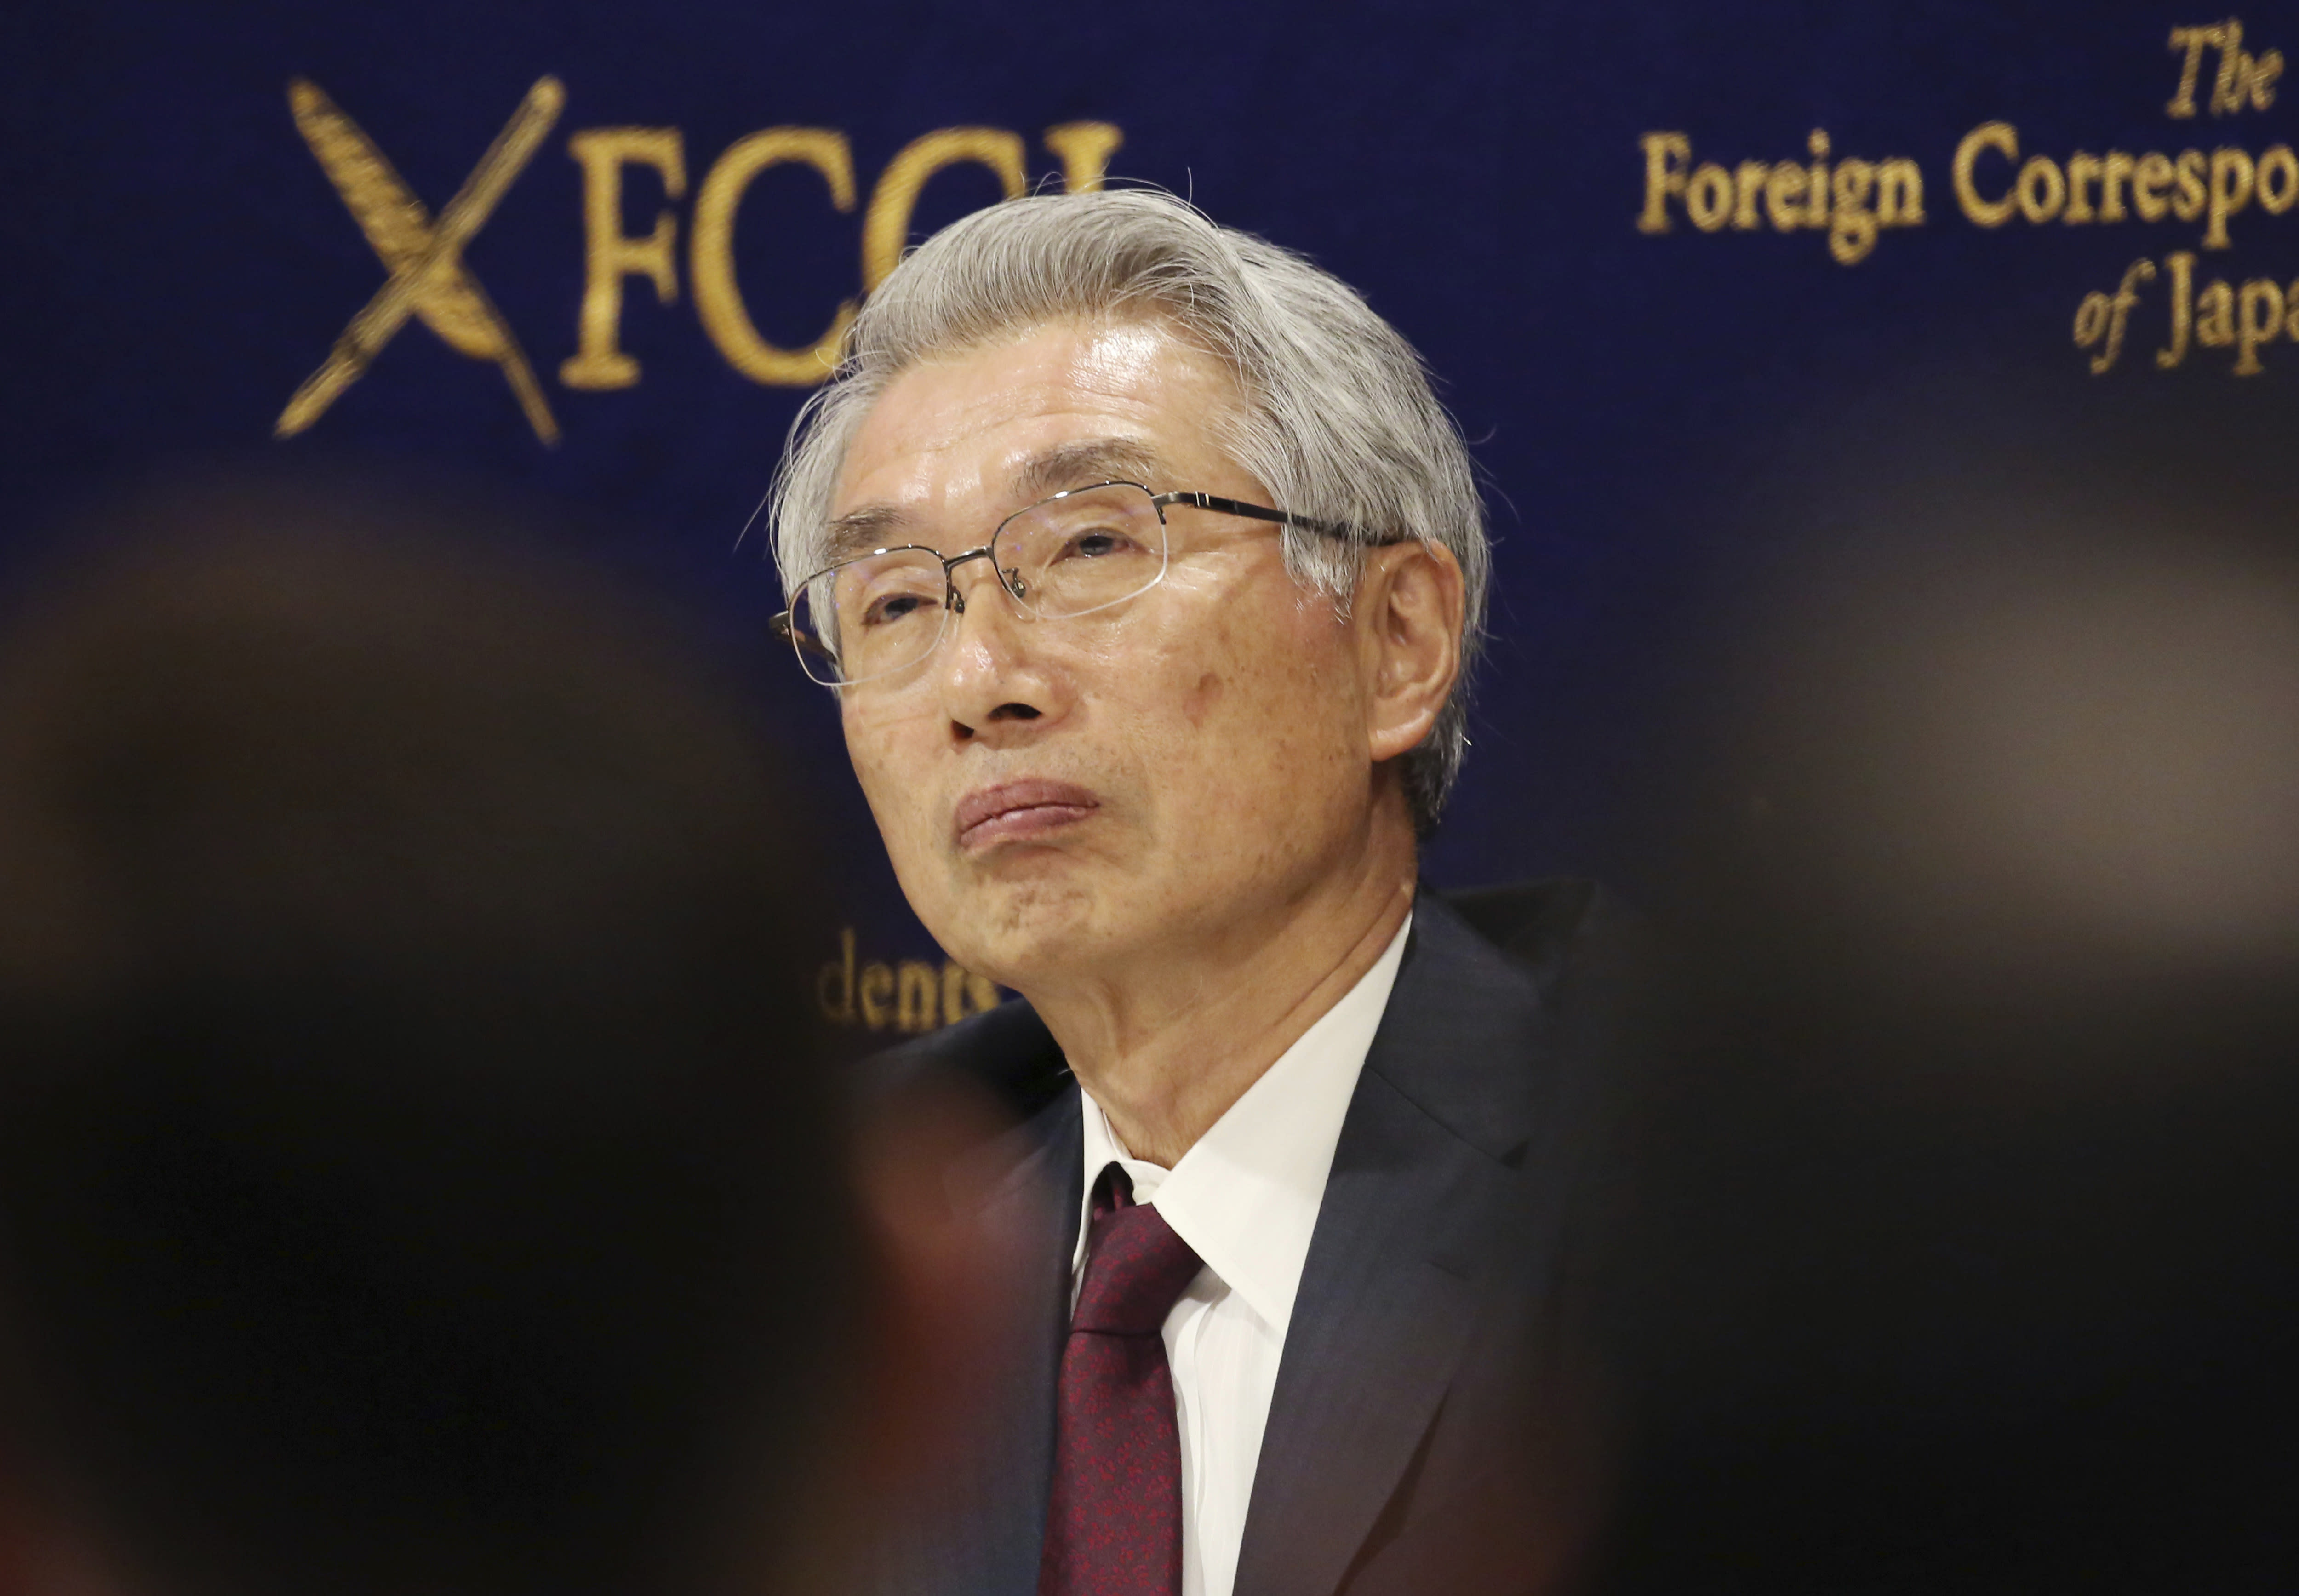 Junichiro Hironaka, Chief defense lawyer of former Nissan chairman Carlos Ghosn speaks during a press conference in Tokyo, Monday, March 4, 2019. Hironaka said Monday that Ghosn promised to accept camera surveillance as a way to monitor his activities if he is released from the detention center where he has been held since his Nov. 19 arrest. Ghosn has been charged with falsifying financial reports and breach of trust. (AP Photo/Koji Sasahara)